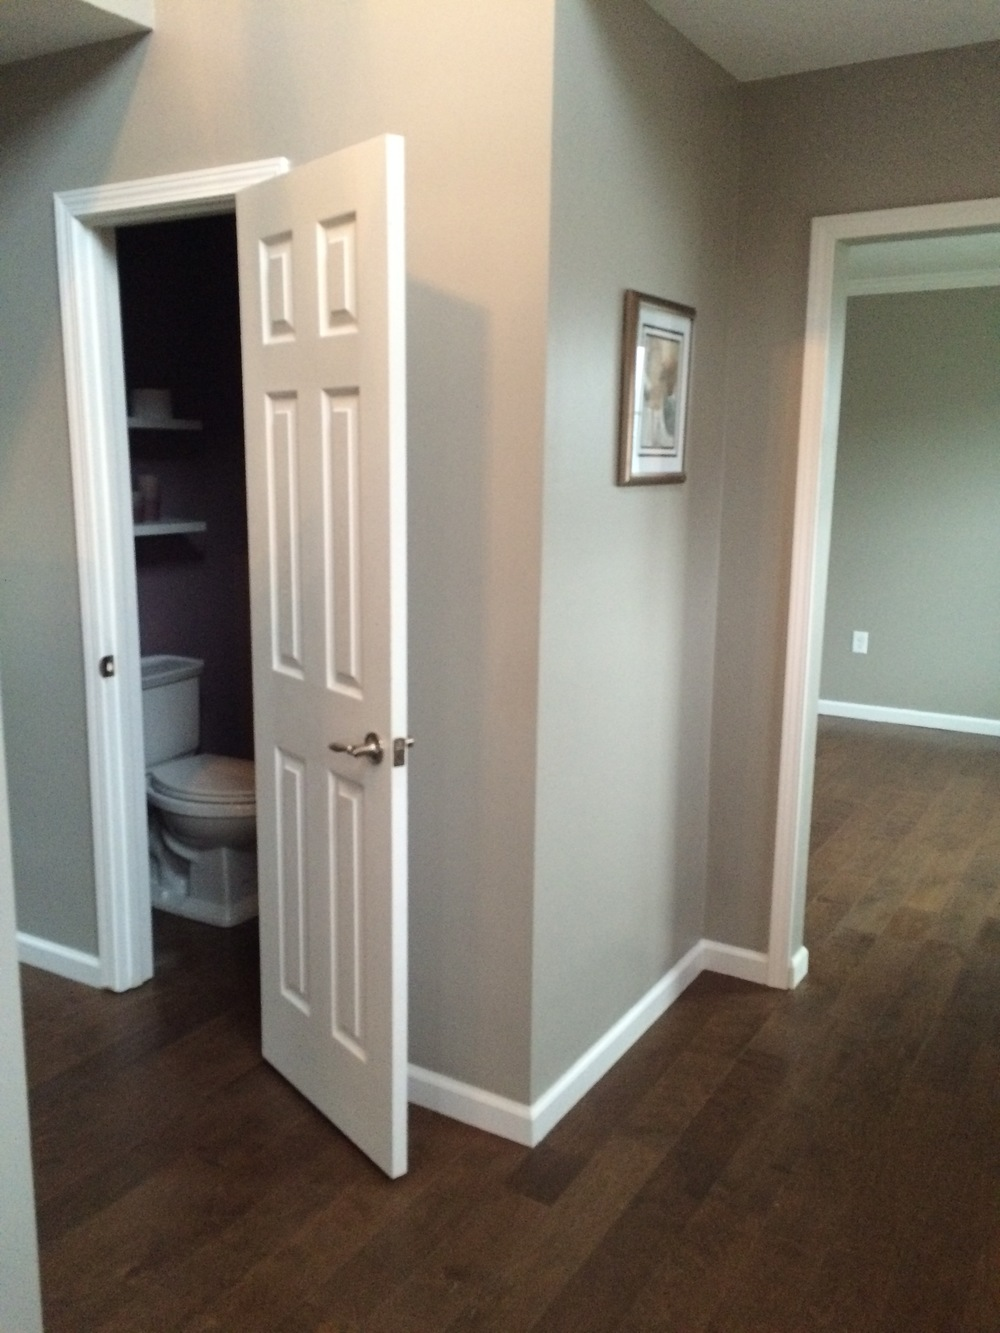 Foyer/Powder Room - AFTER